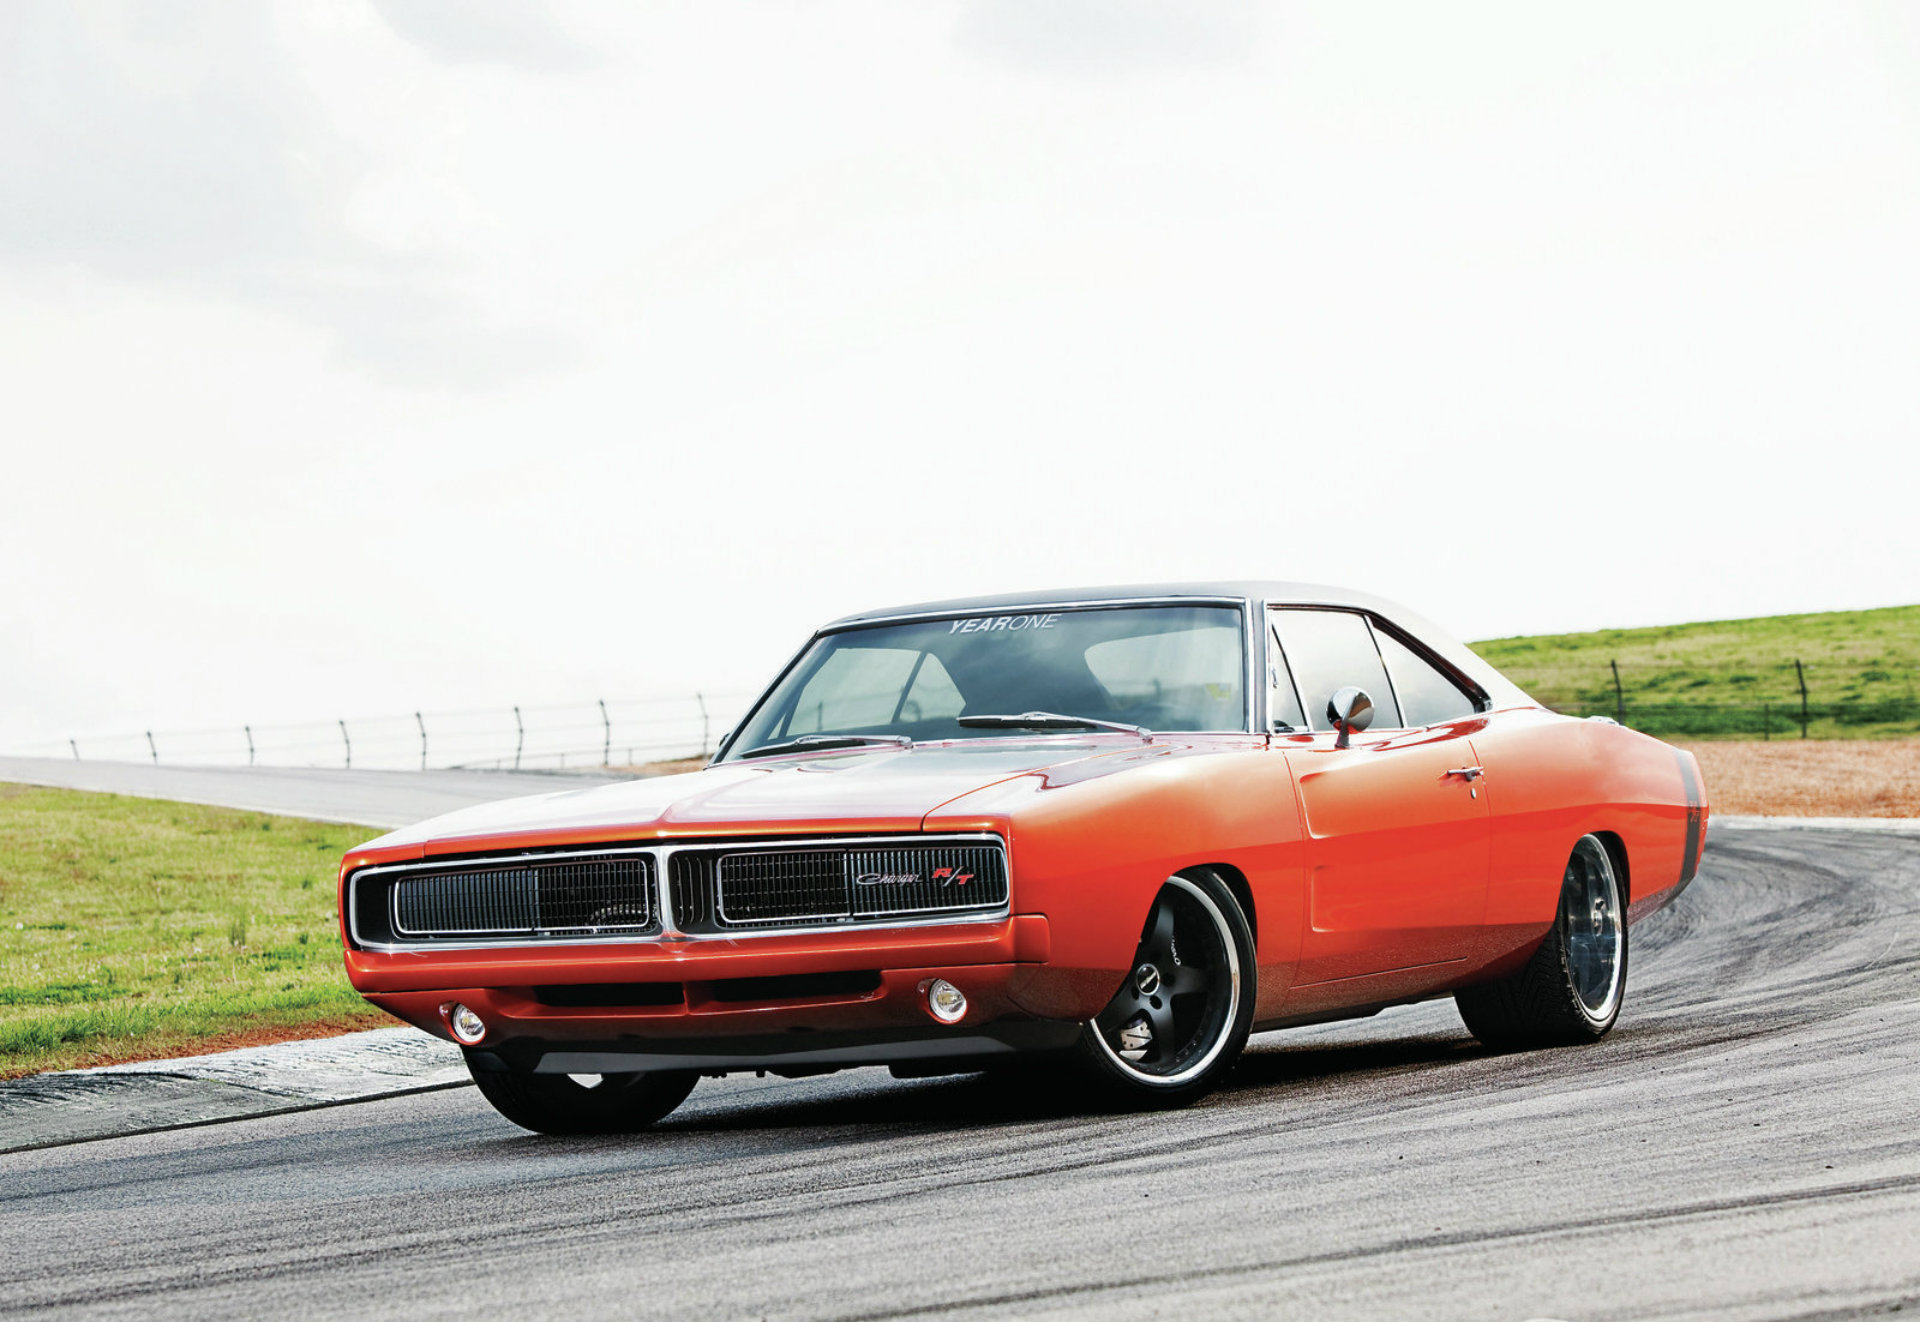 Charger 1969 Mopar dodge muscle cars hot rods wallpaper | 1920x1322 ...